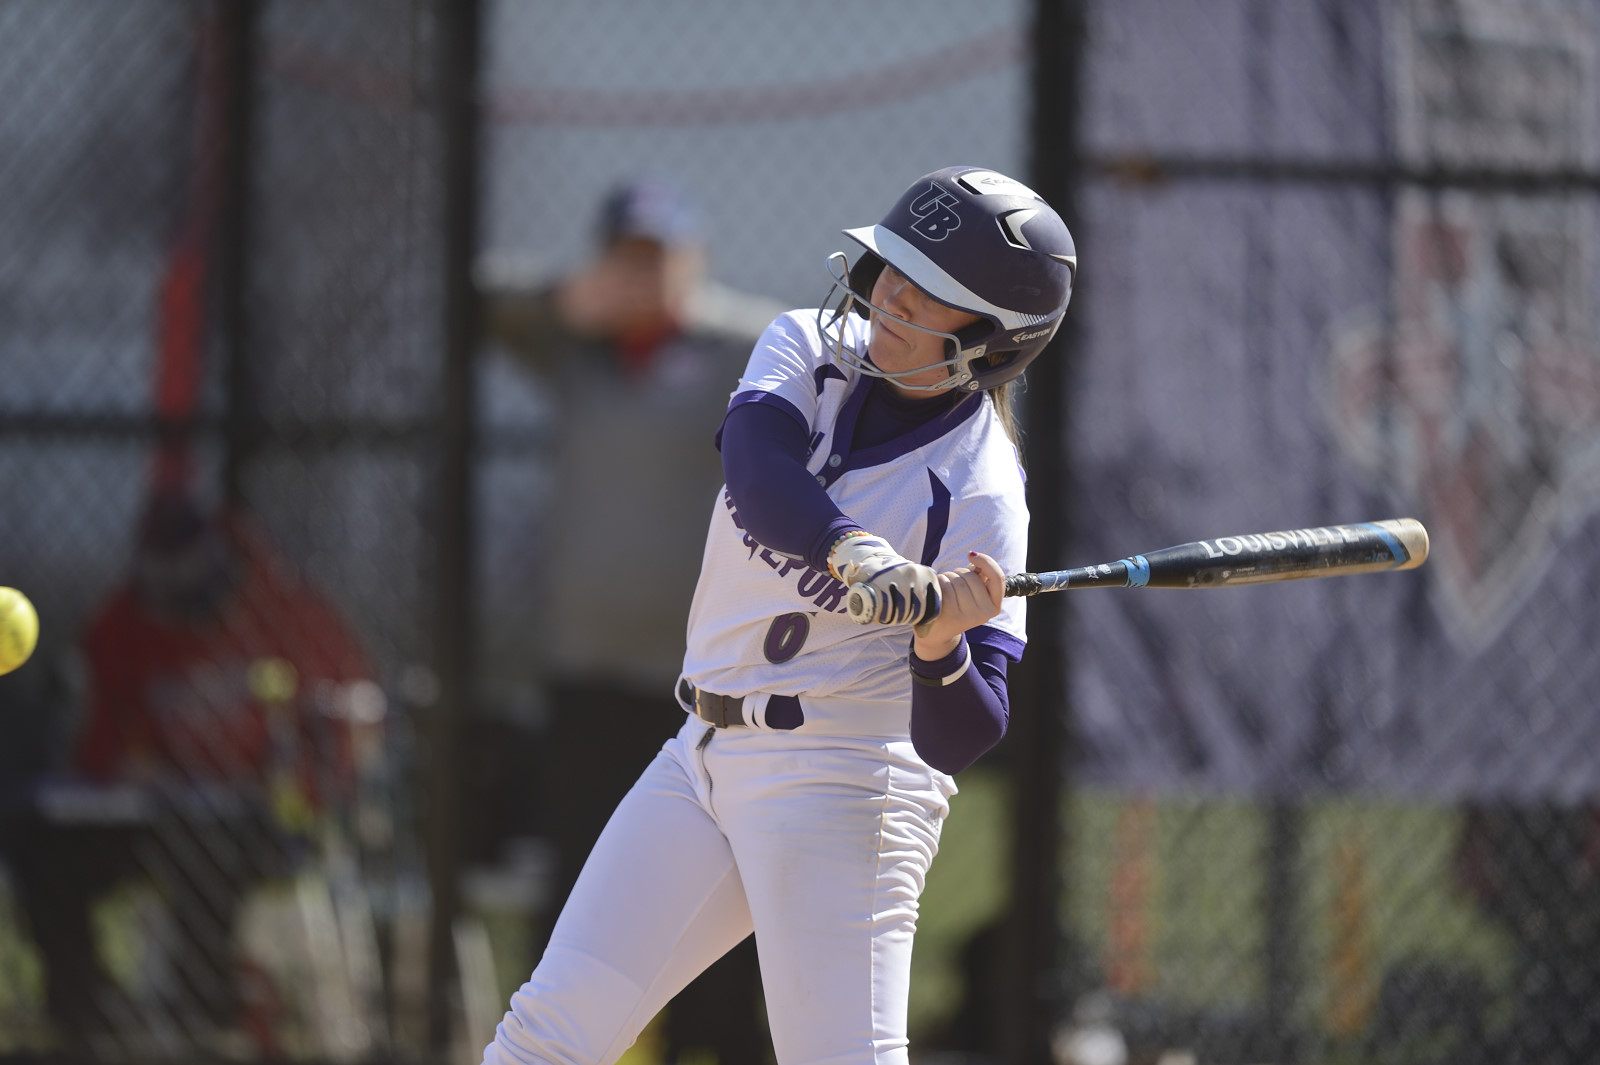 Purple Knights Swept In ECC Softball Play By Red-Hot Molloy